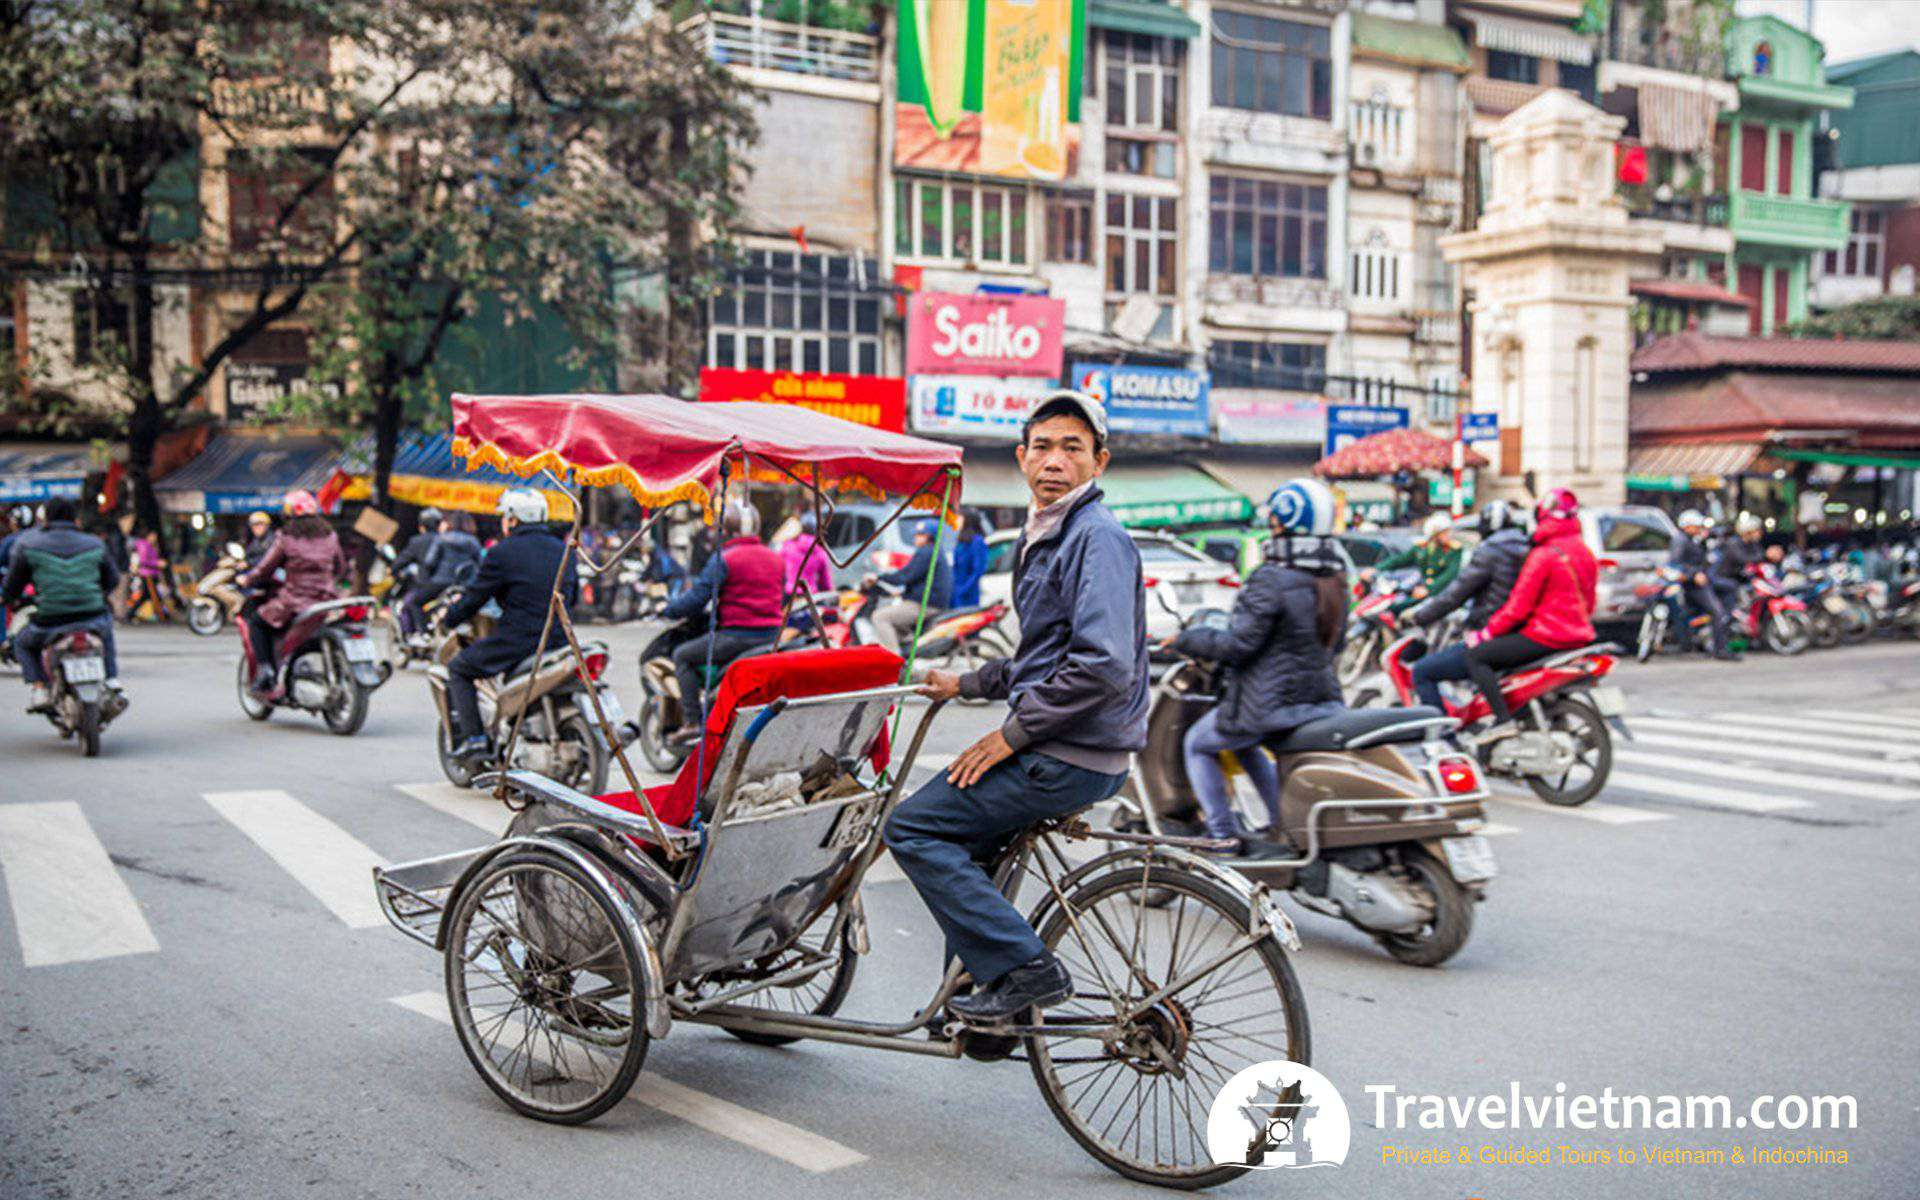 What is cyclo ( Xich Lo) in Vietnam?